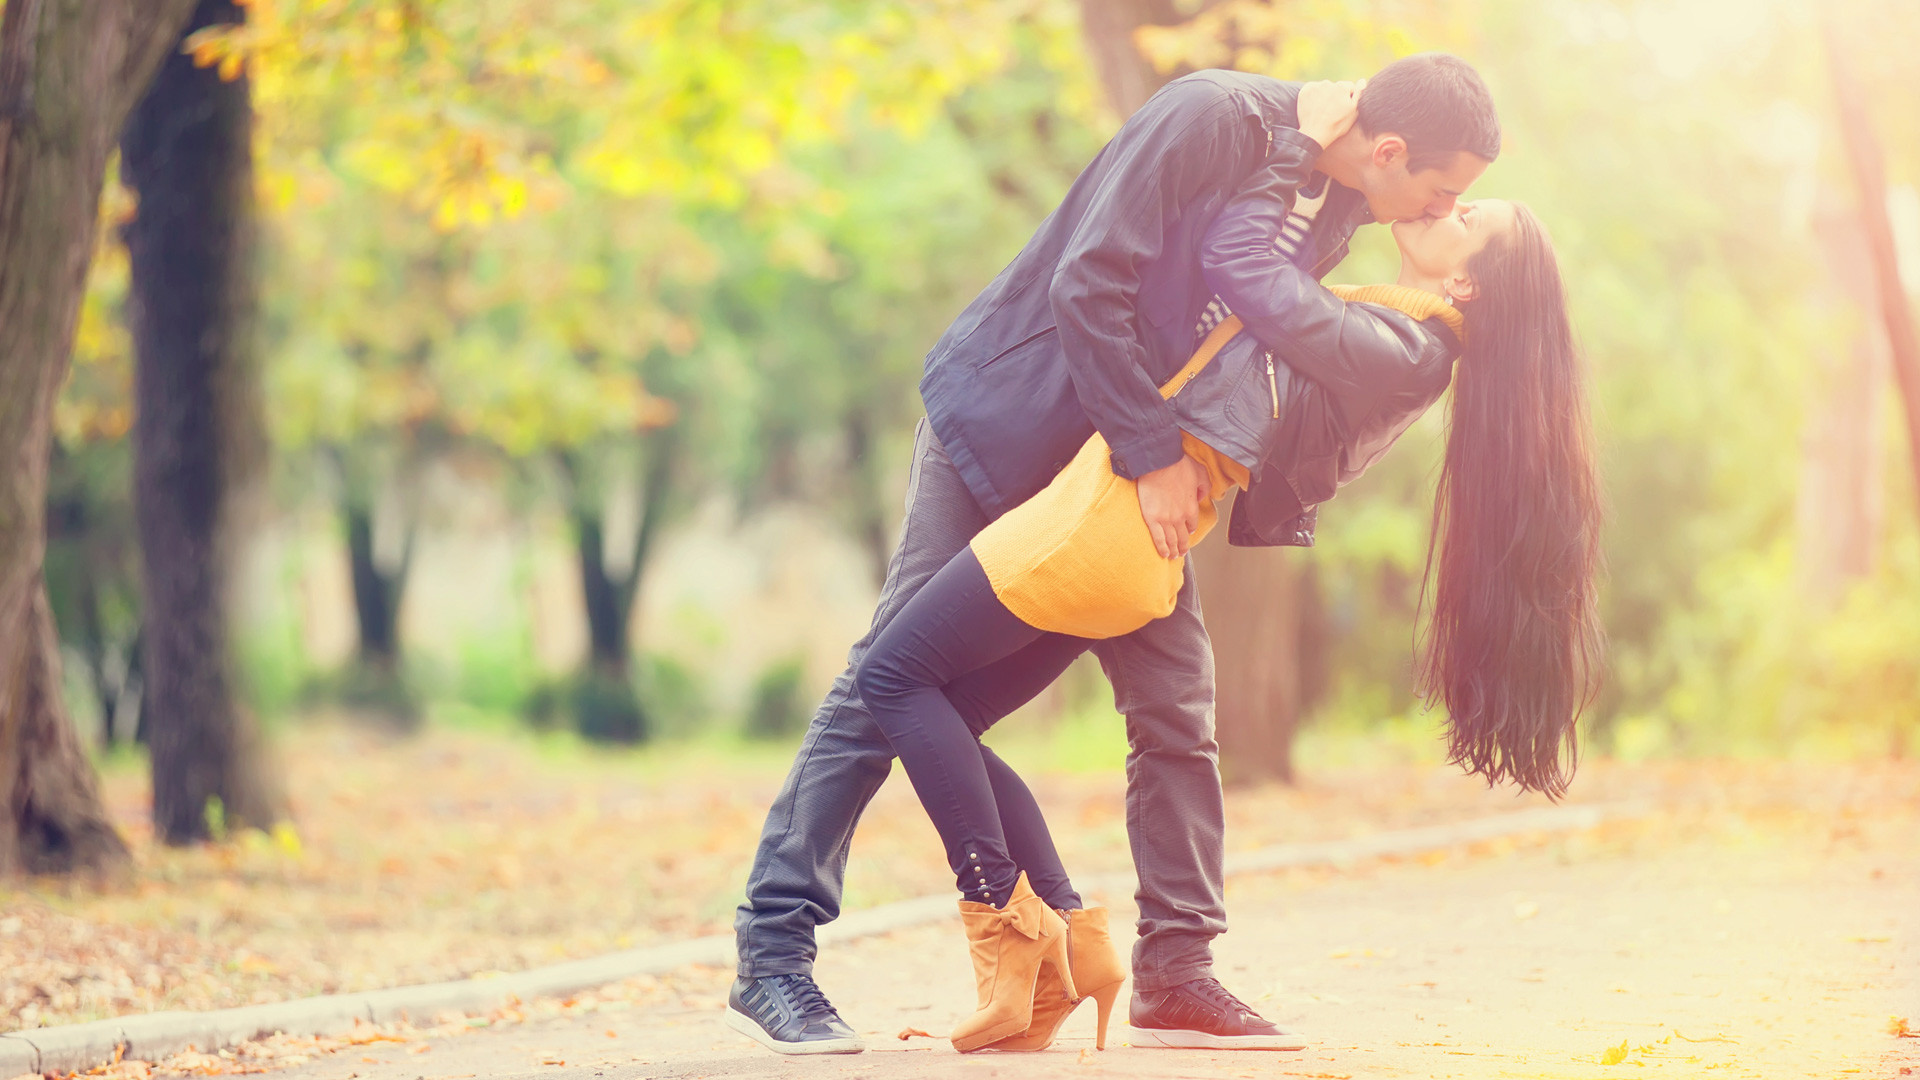 146 Love Couple Pic Images Wallpaper Pictures Hd 1080p